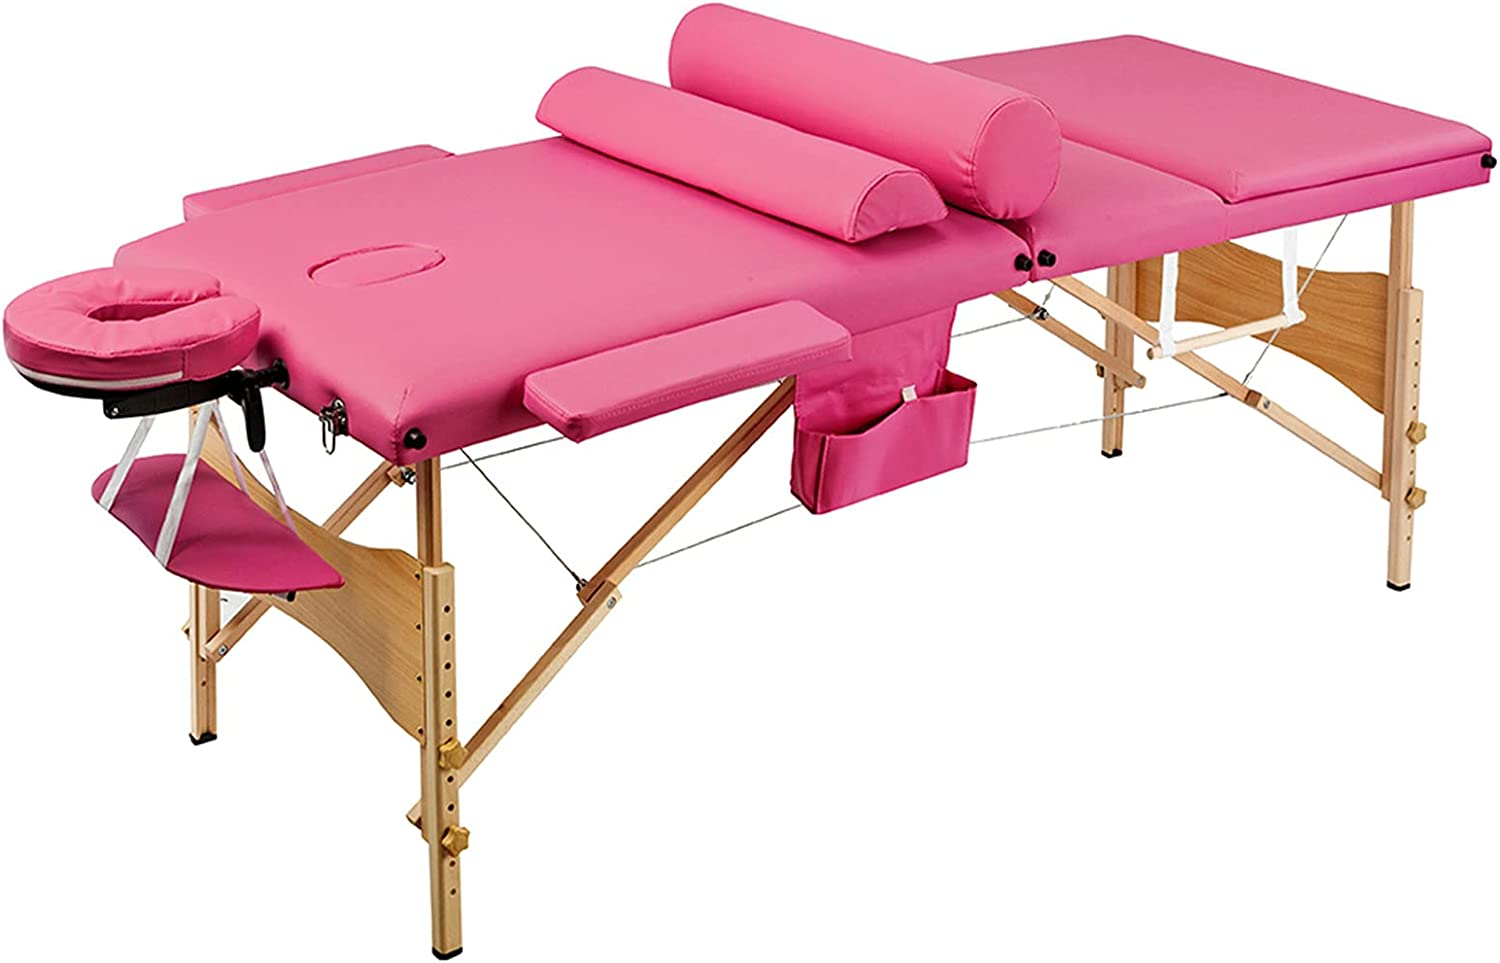 Tesmula Cheap bargain gt2-LC Max 55% OFF 3 Sections Folding Table Massage Beauty Portable